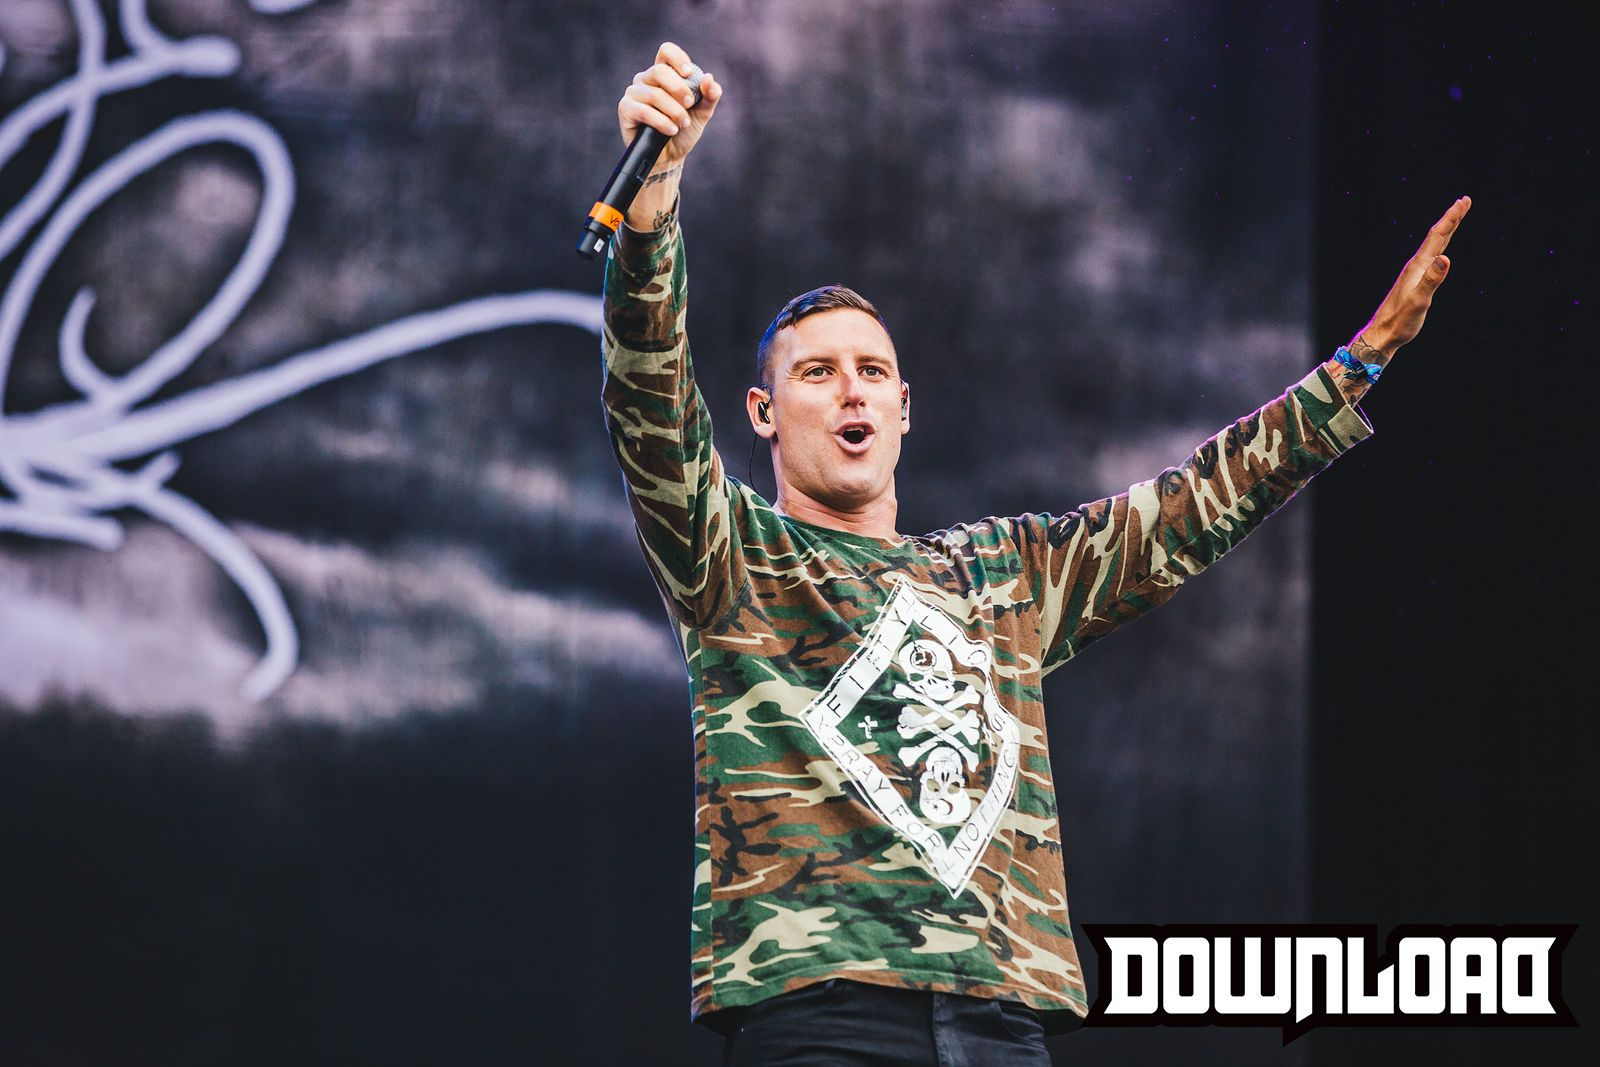 Parkway Drive / Download 2015